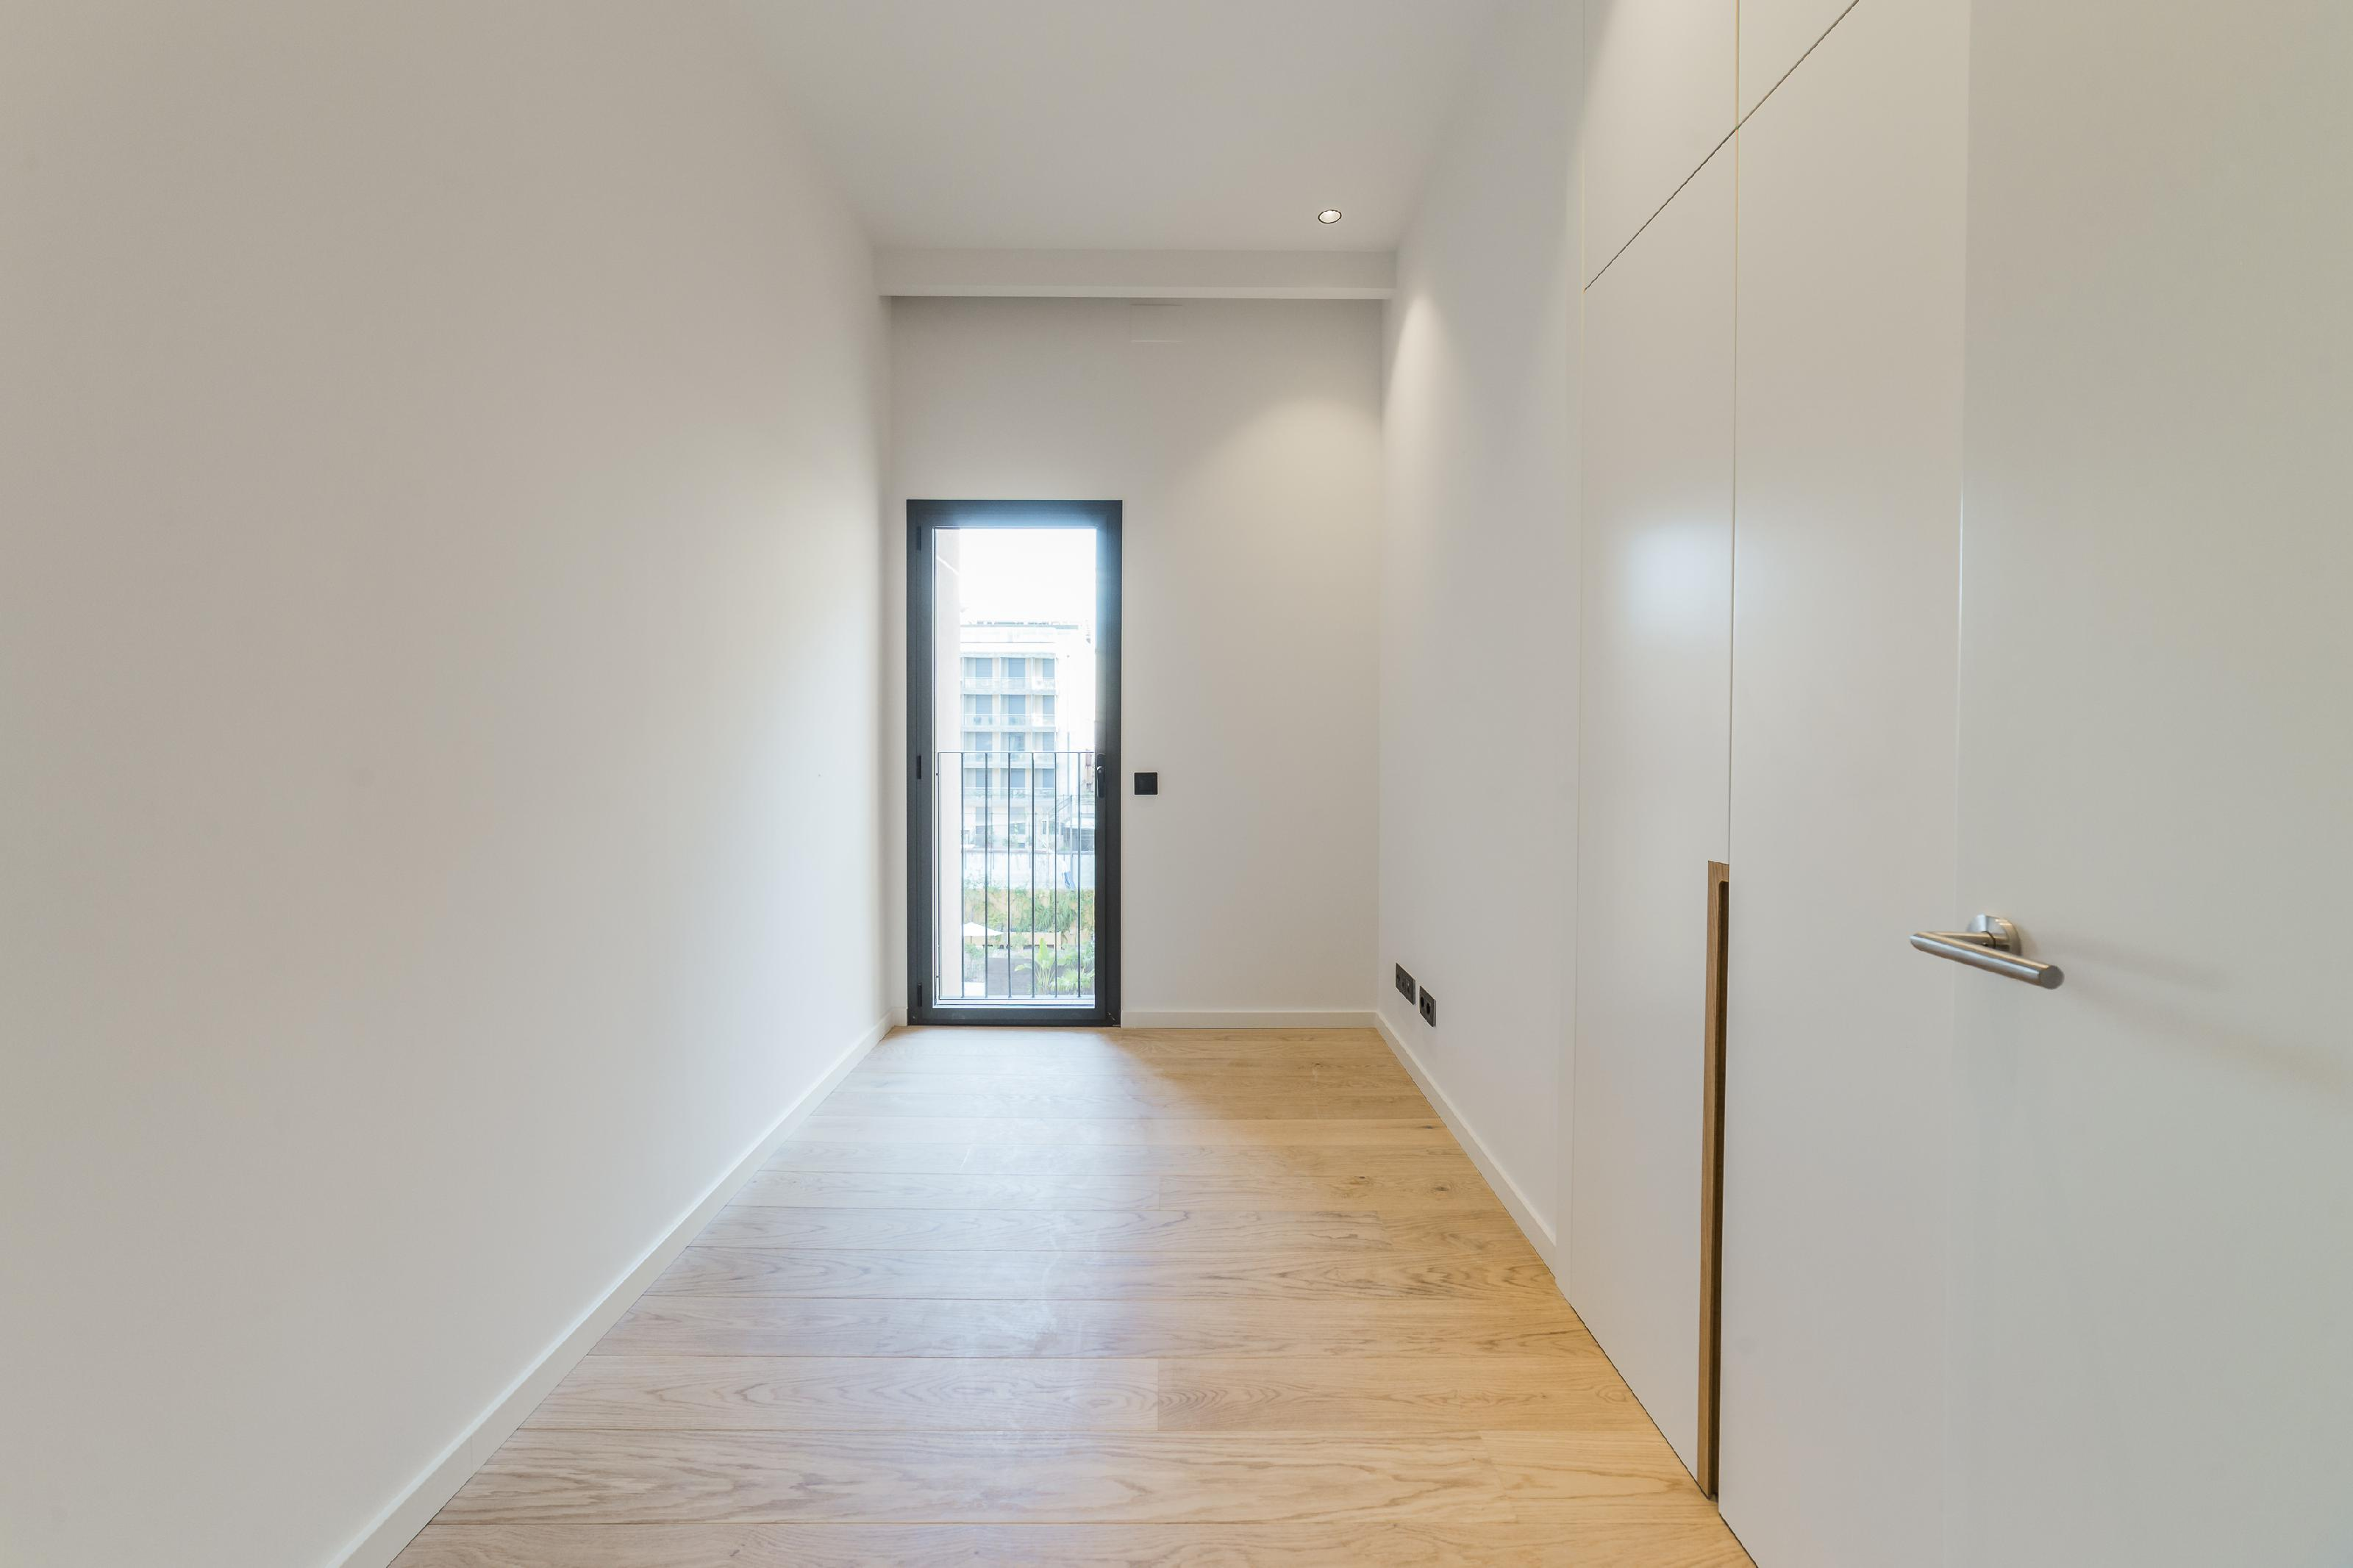 182474 Apartment for sale in Eixample, Old Left Eixample 30